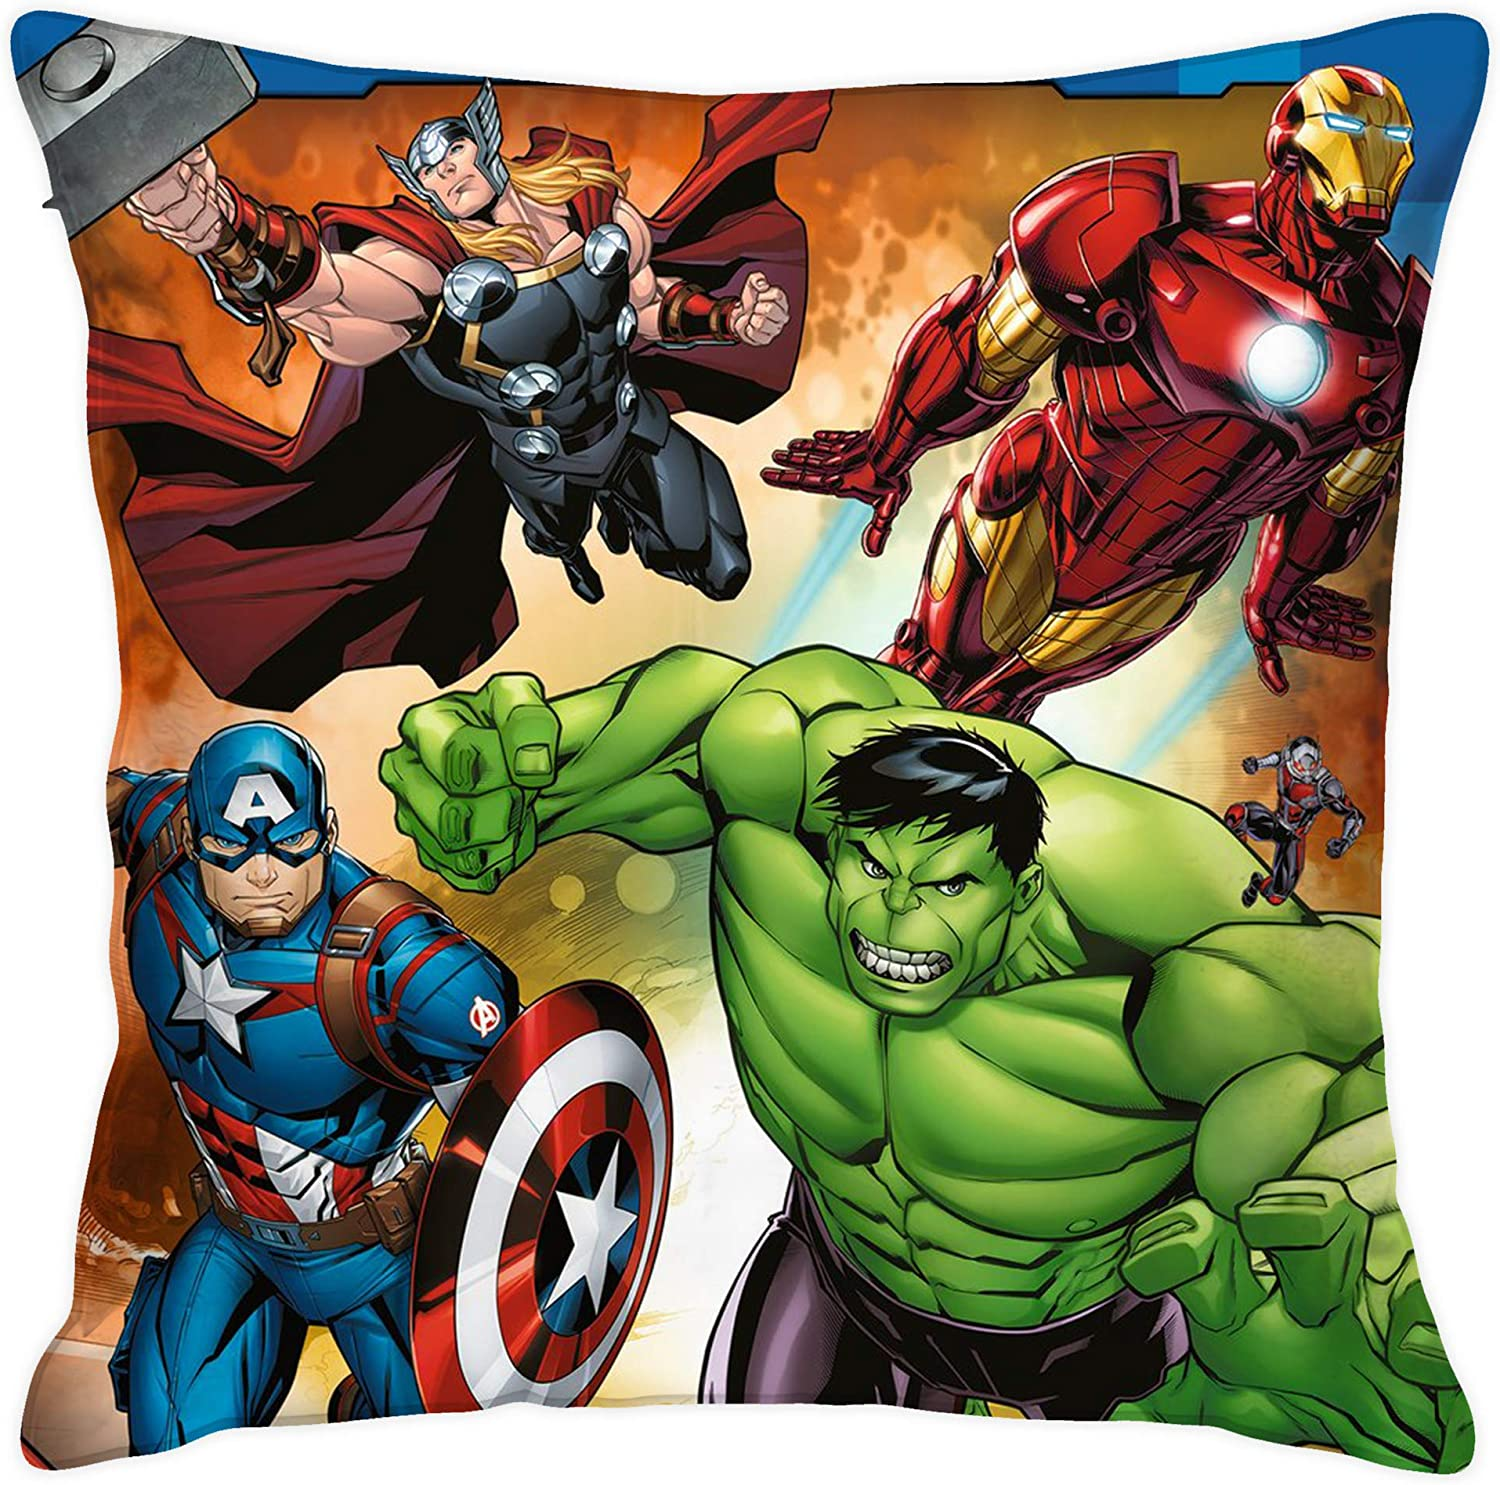 Marvel Avengers Decorative Pillow Cover Designed as a for Fans Pillow Cover Size:in 18